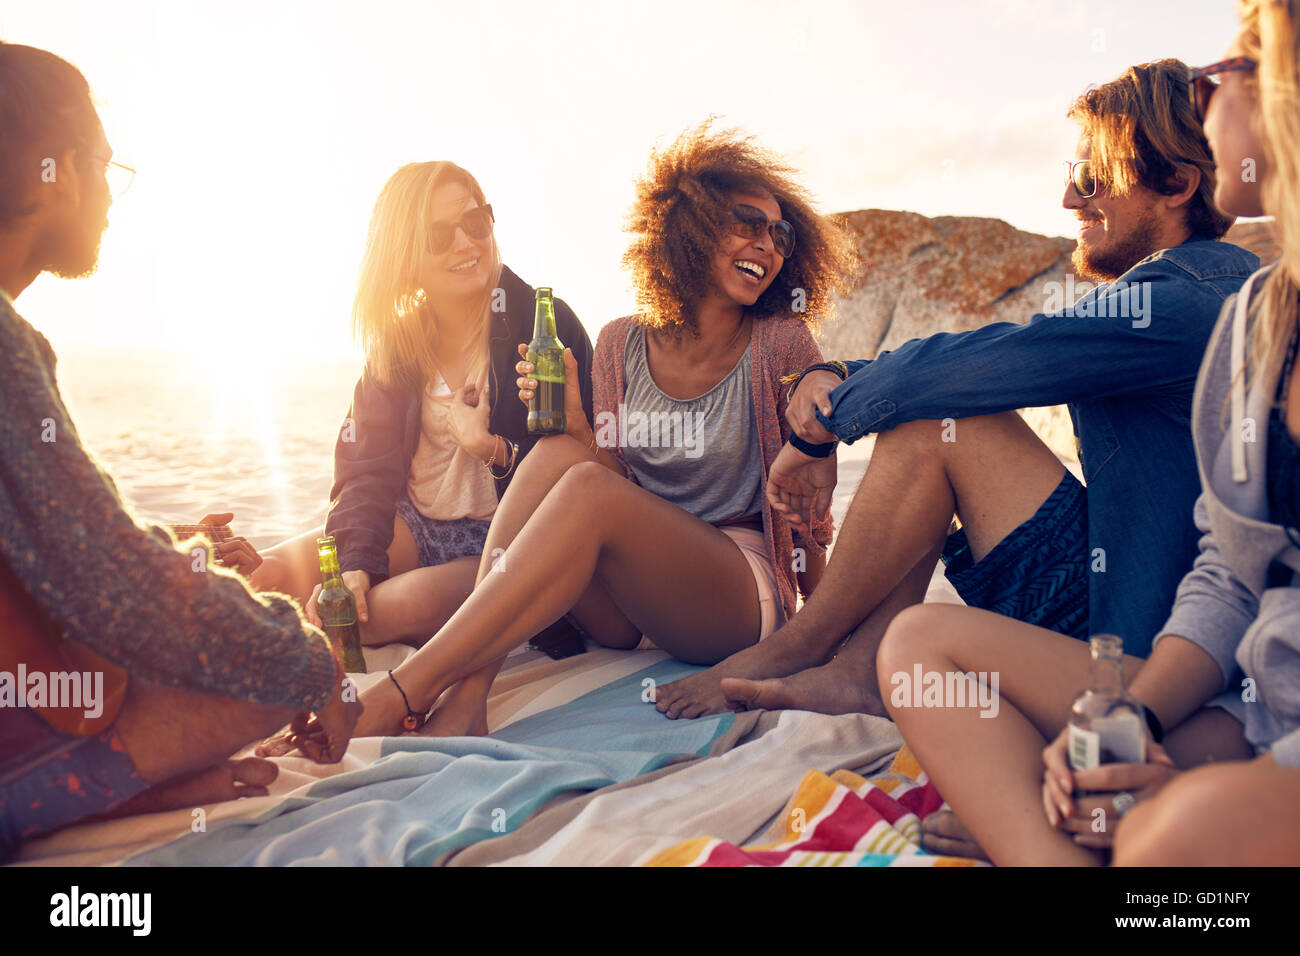 Mixed race friends having fun at the beach. Group of happy young people sitting together at the beach talking and drinking beers Stock Photo